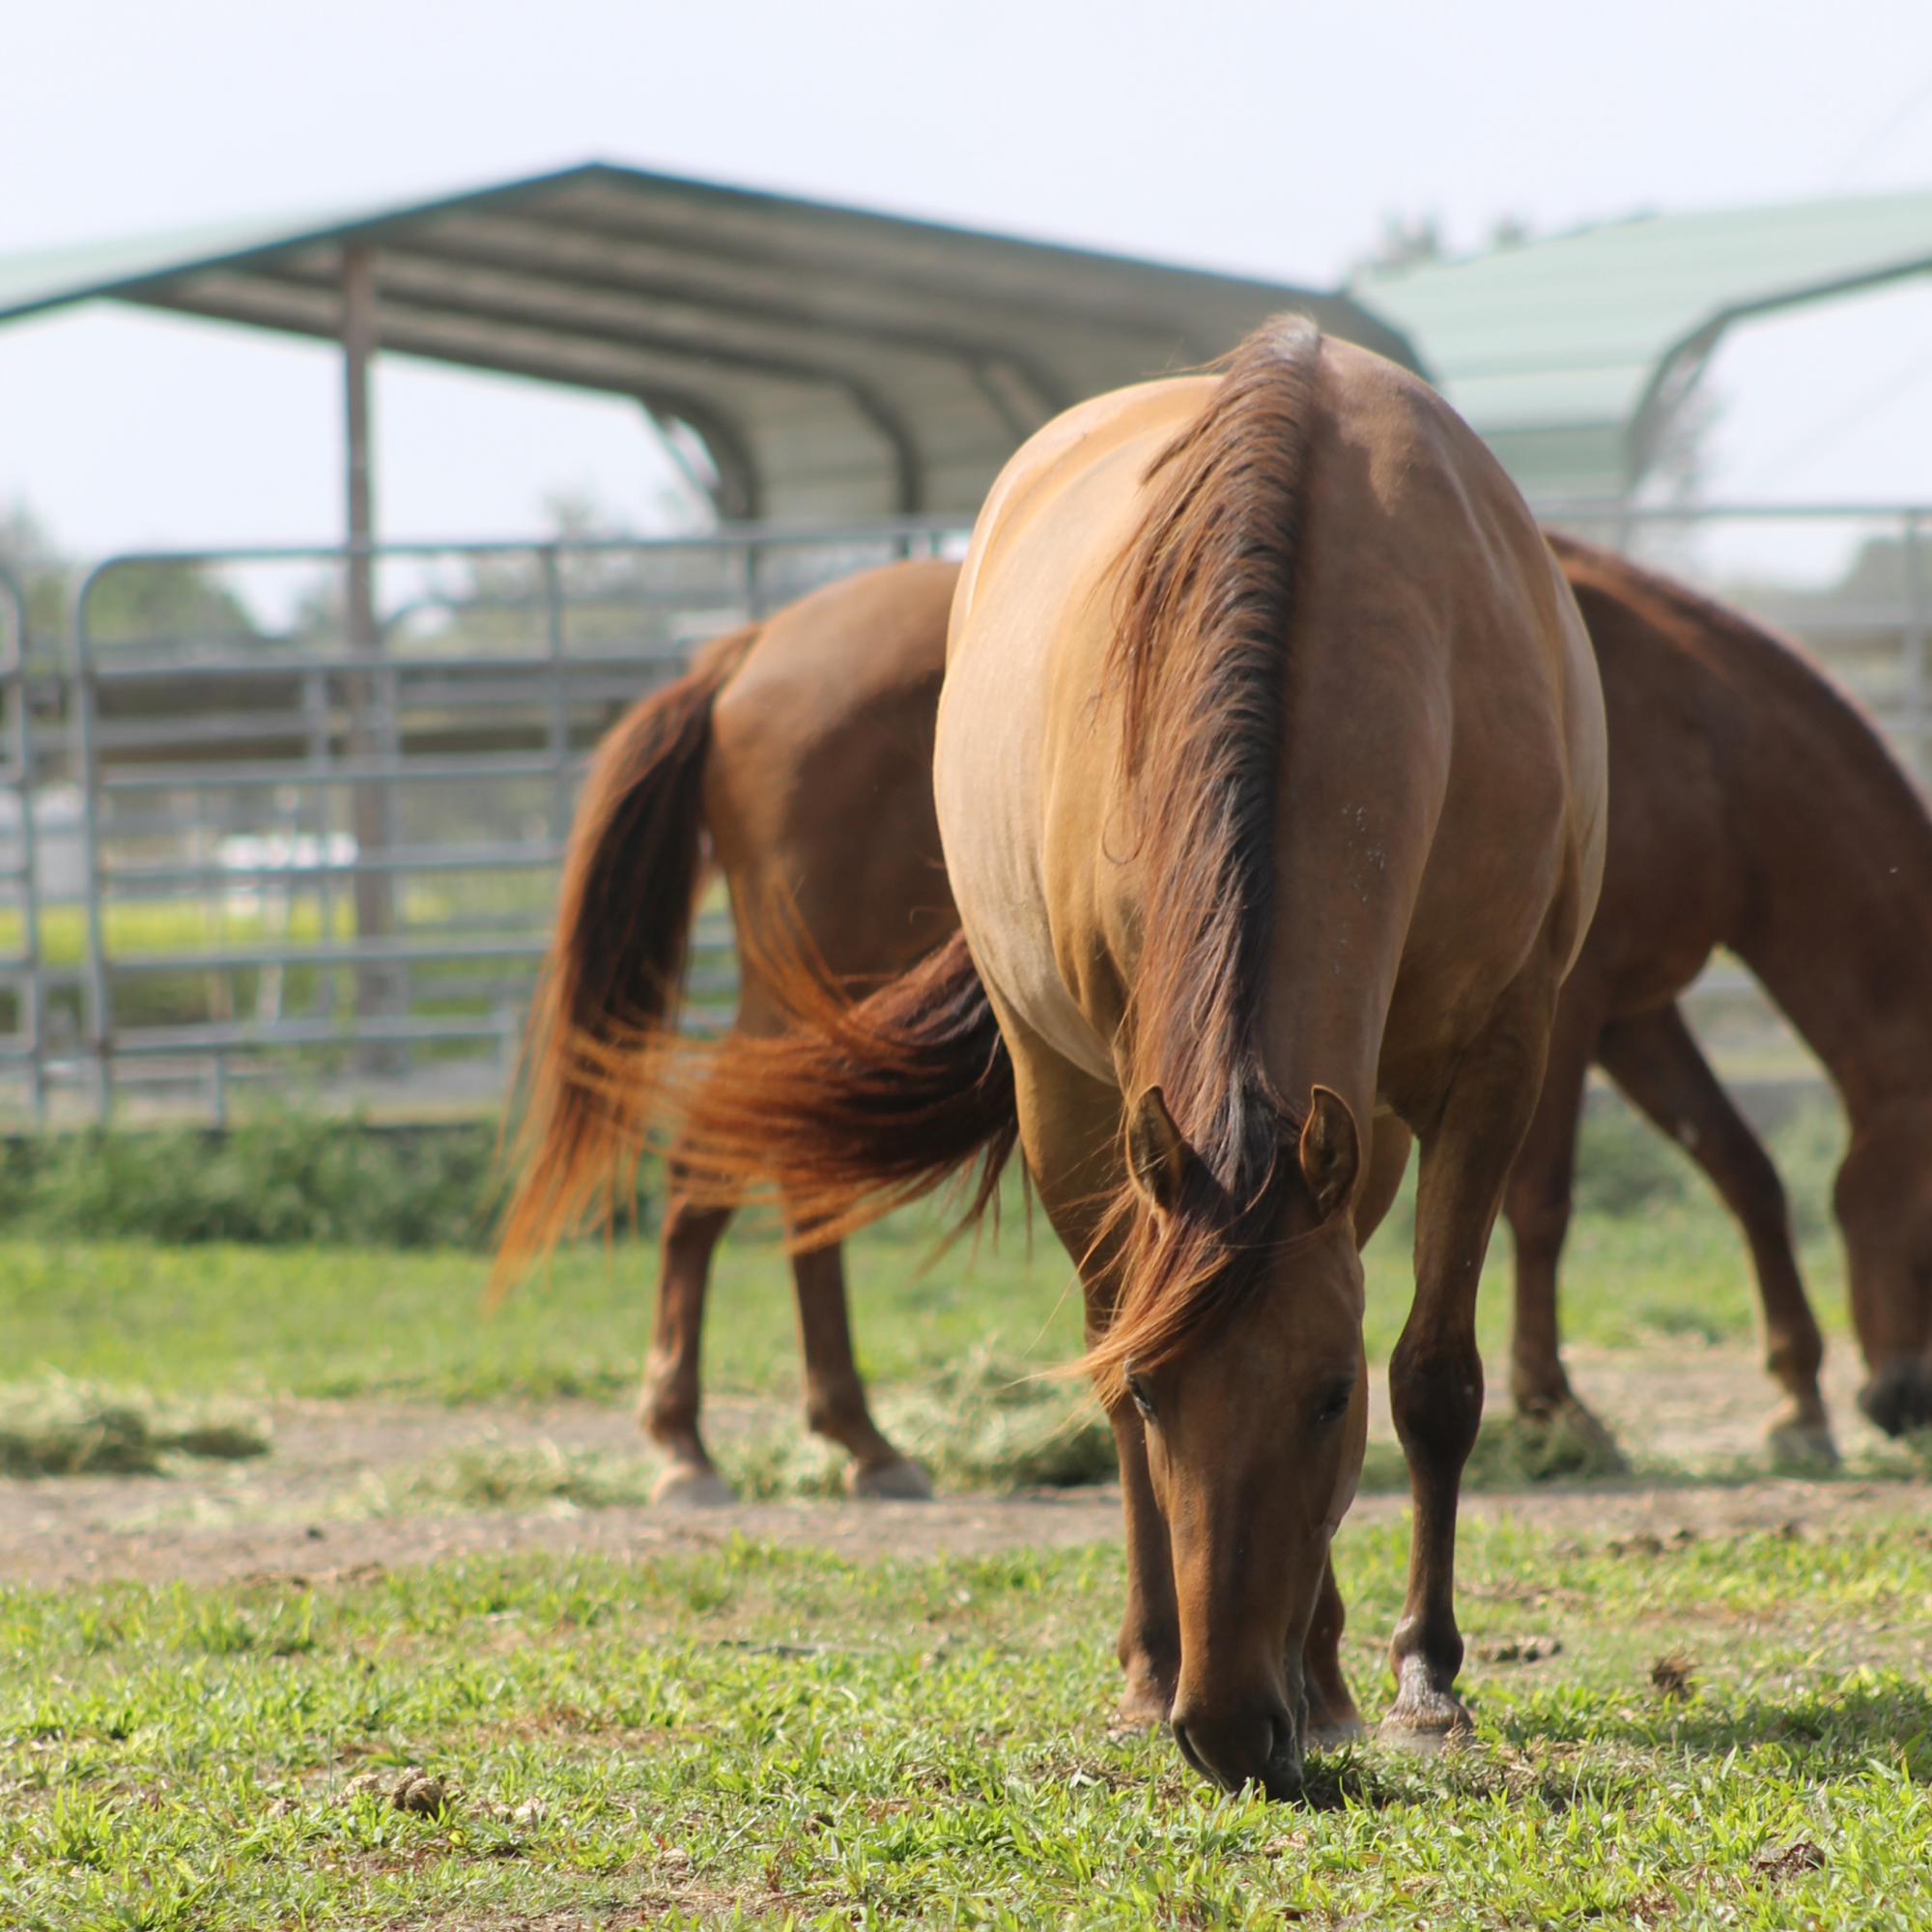 South Florida SPCA rescues horses and livestock from a lifetime of neglect and mistreatment